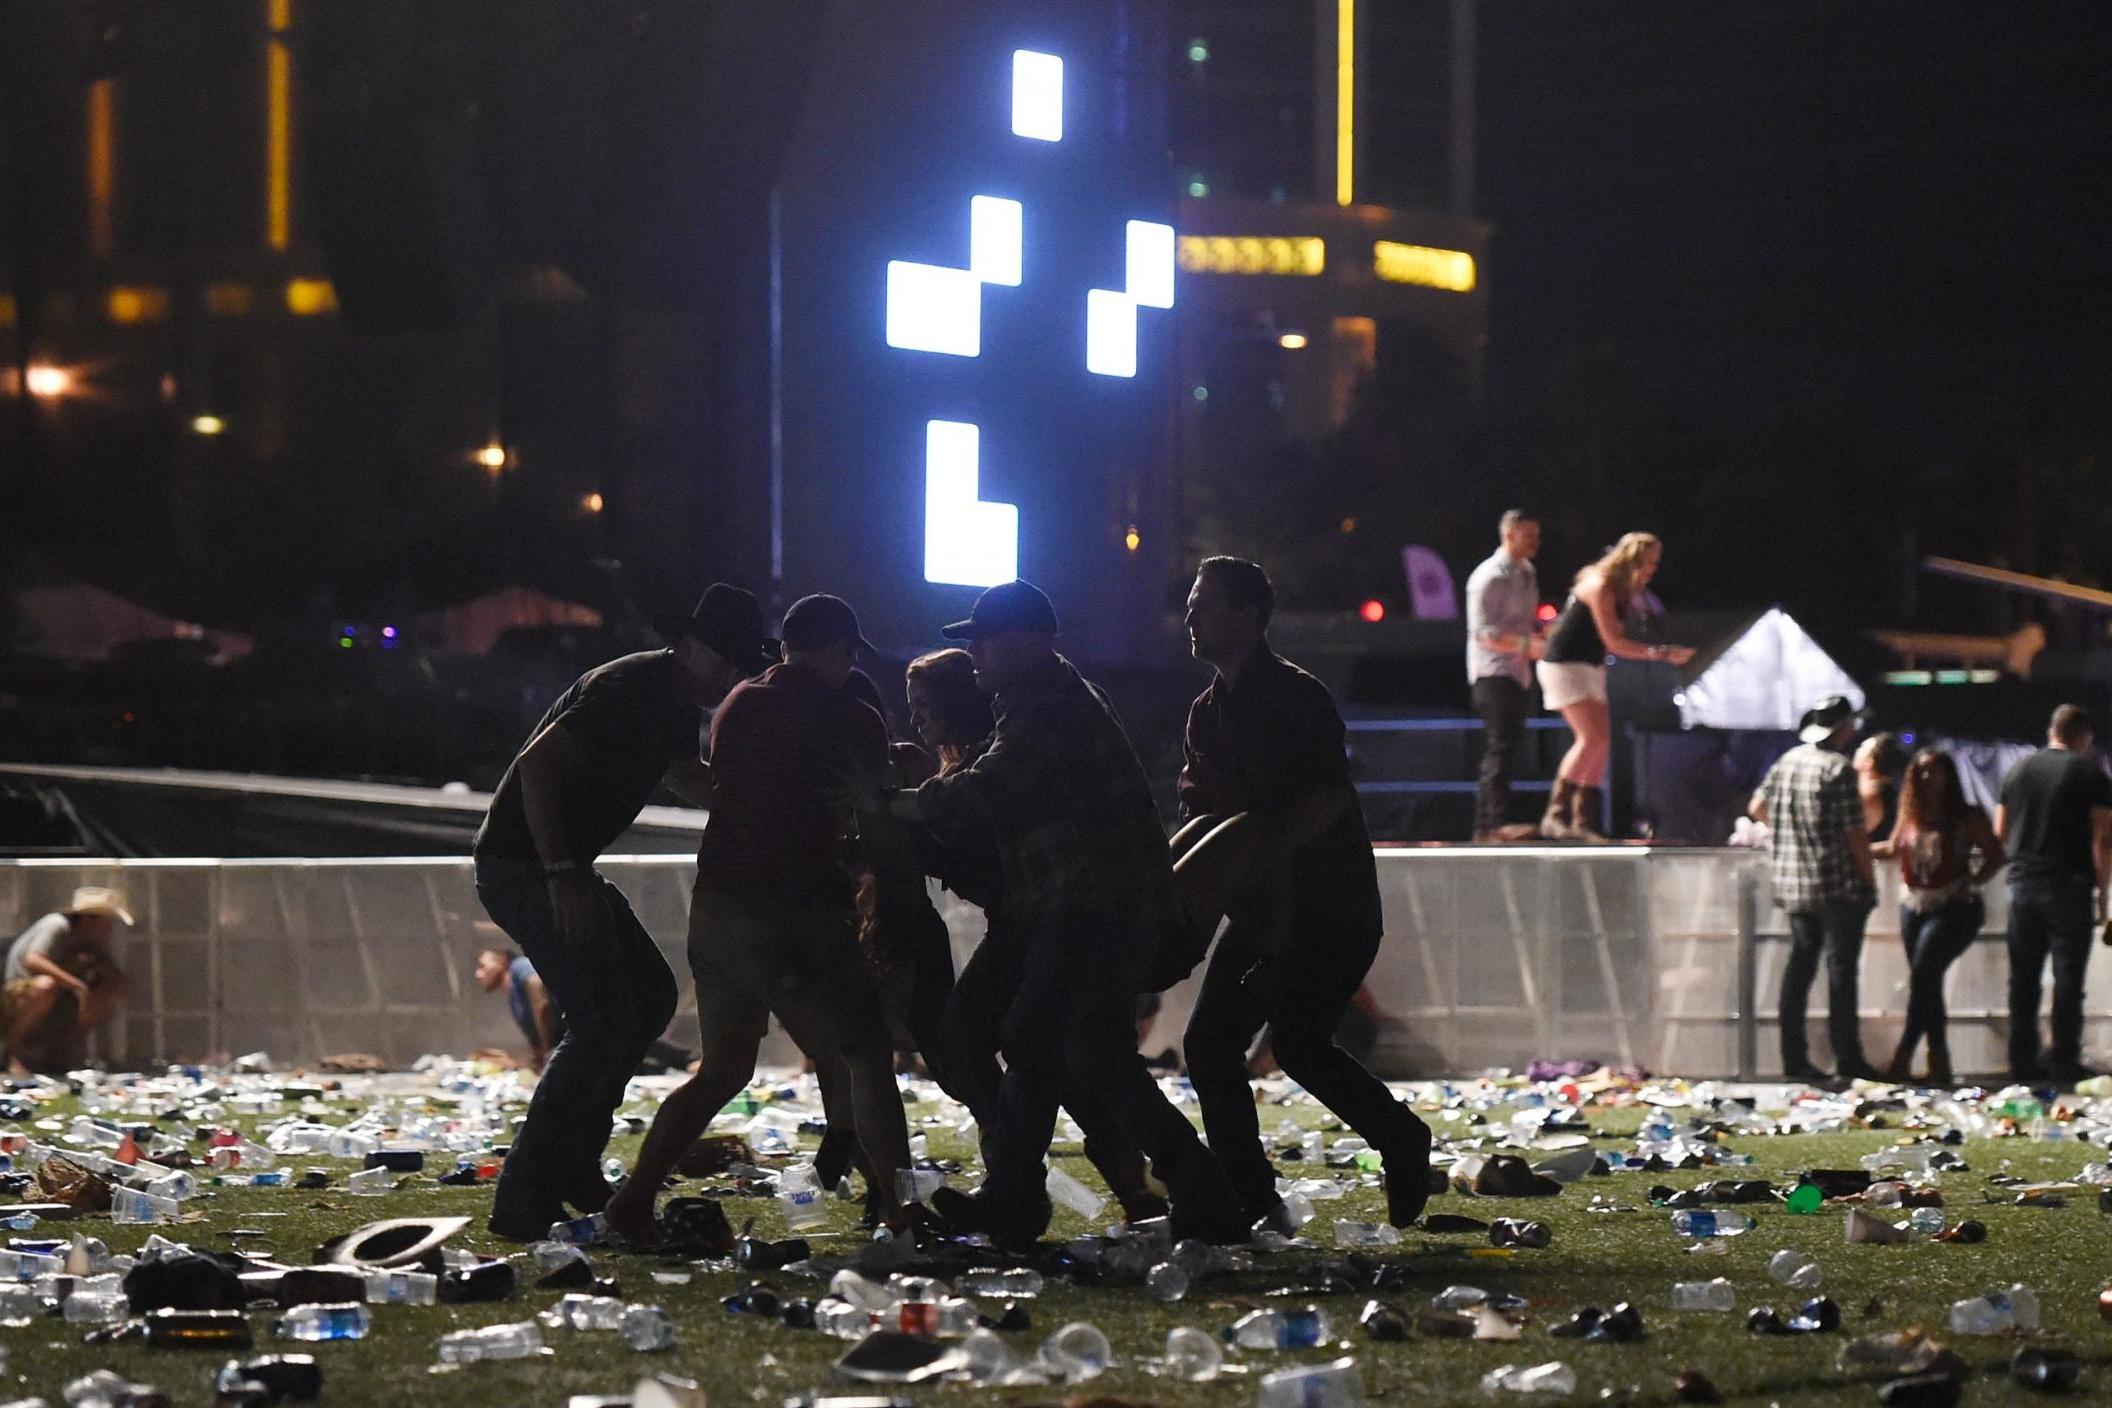 Las Vegas shooting tops list of deadliest mass shootings